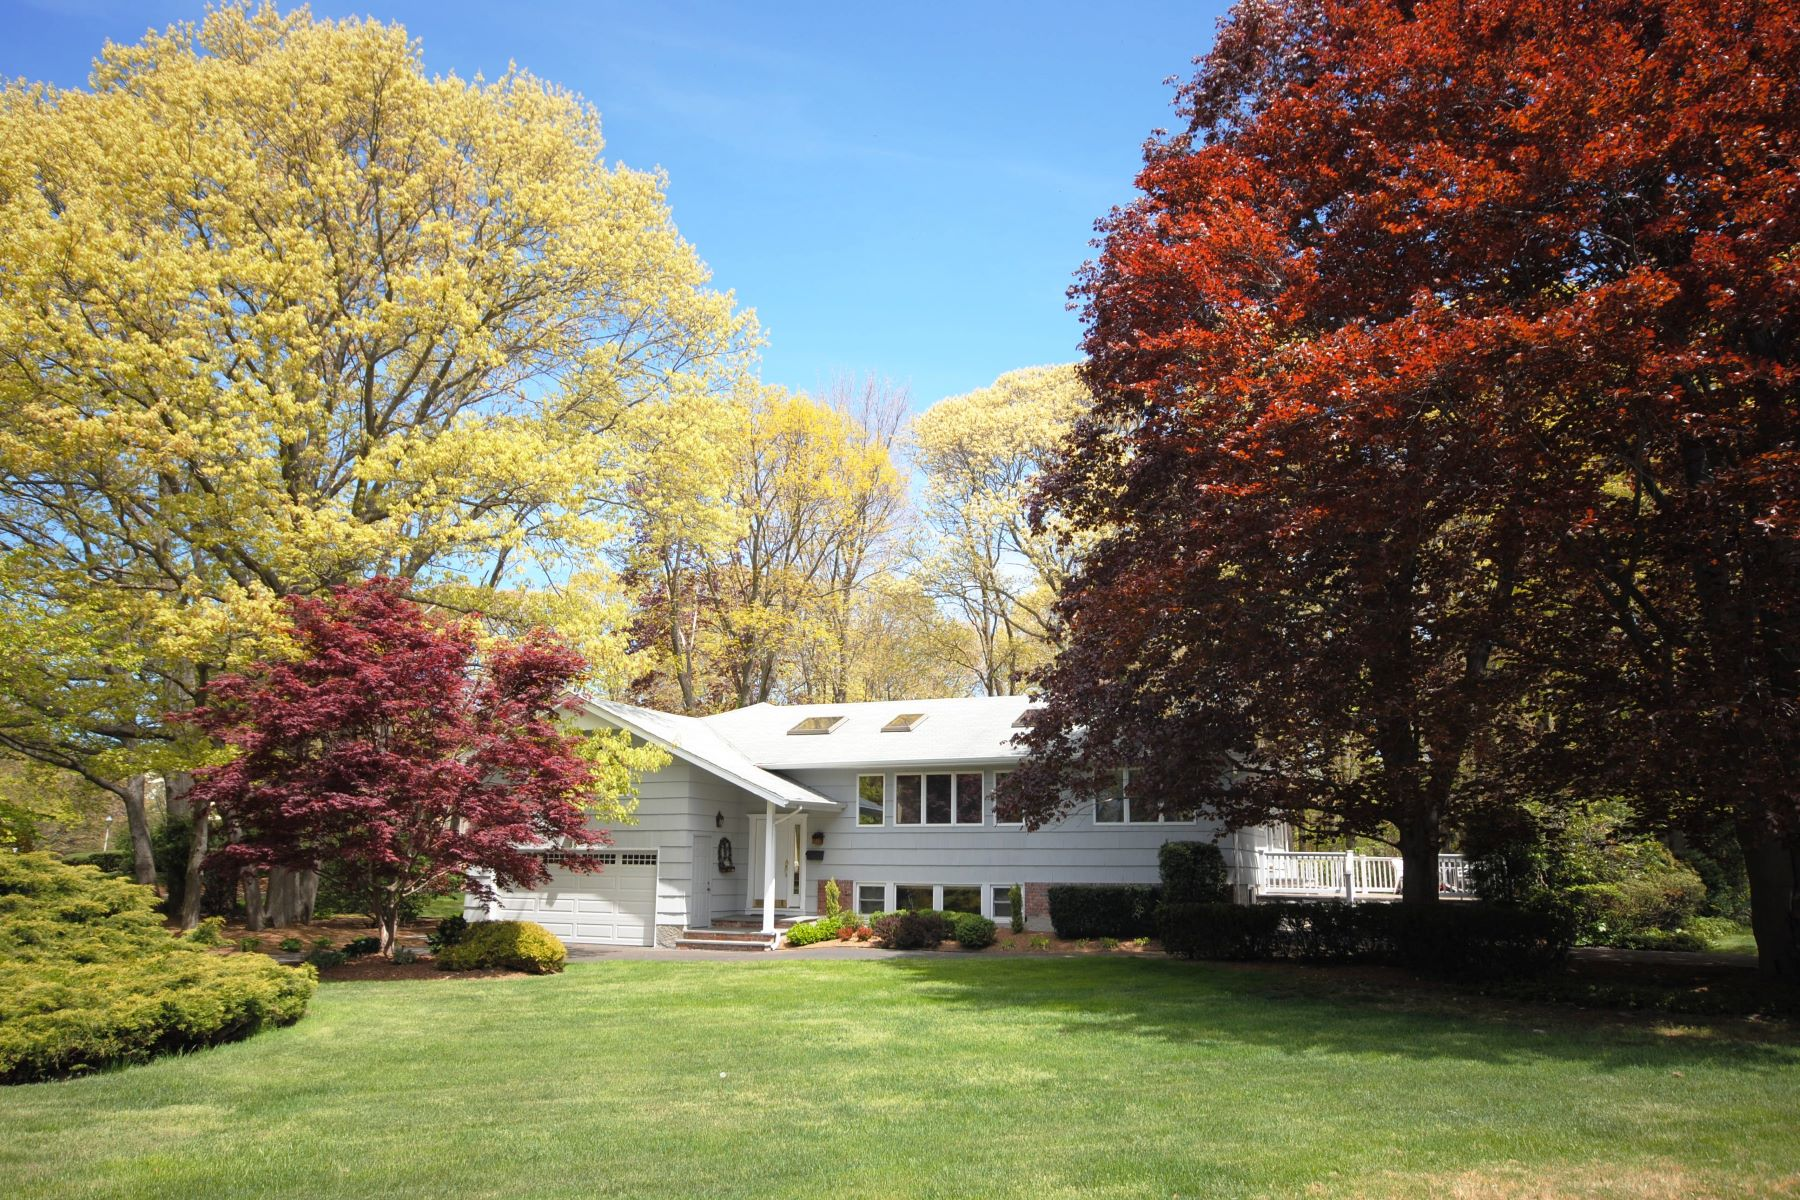 Single Family Homes for Active at Port Jefferson 55 Soundview Dr Port Jefferson, New York 11777 United States